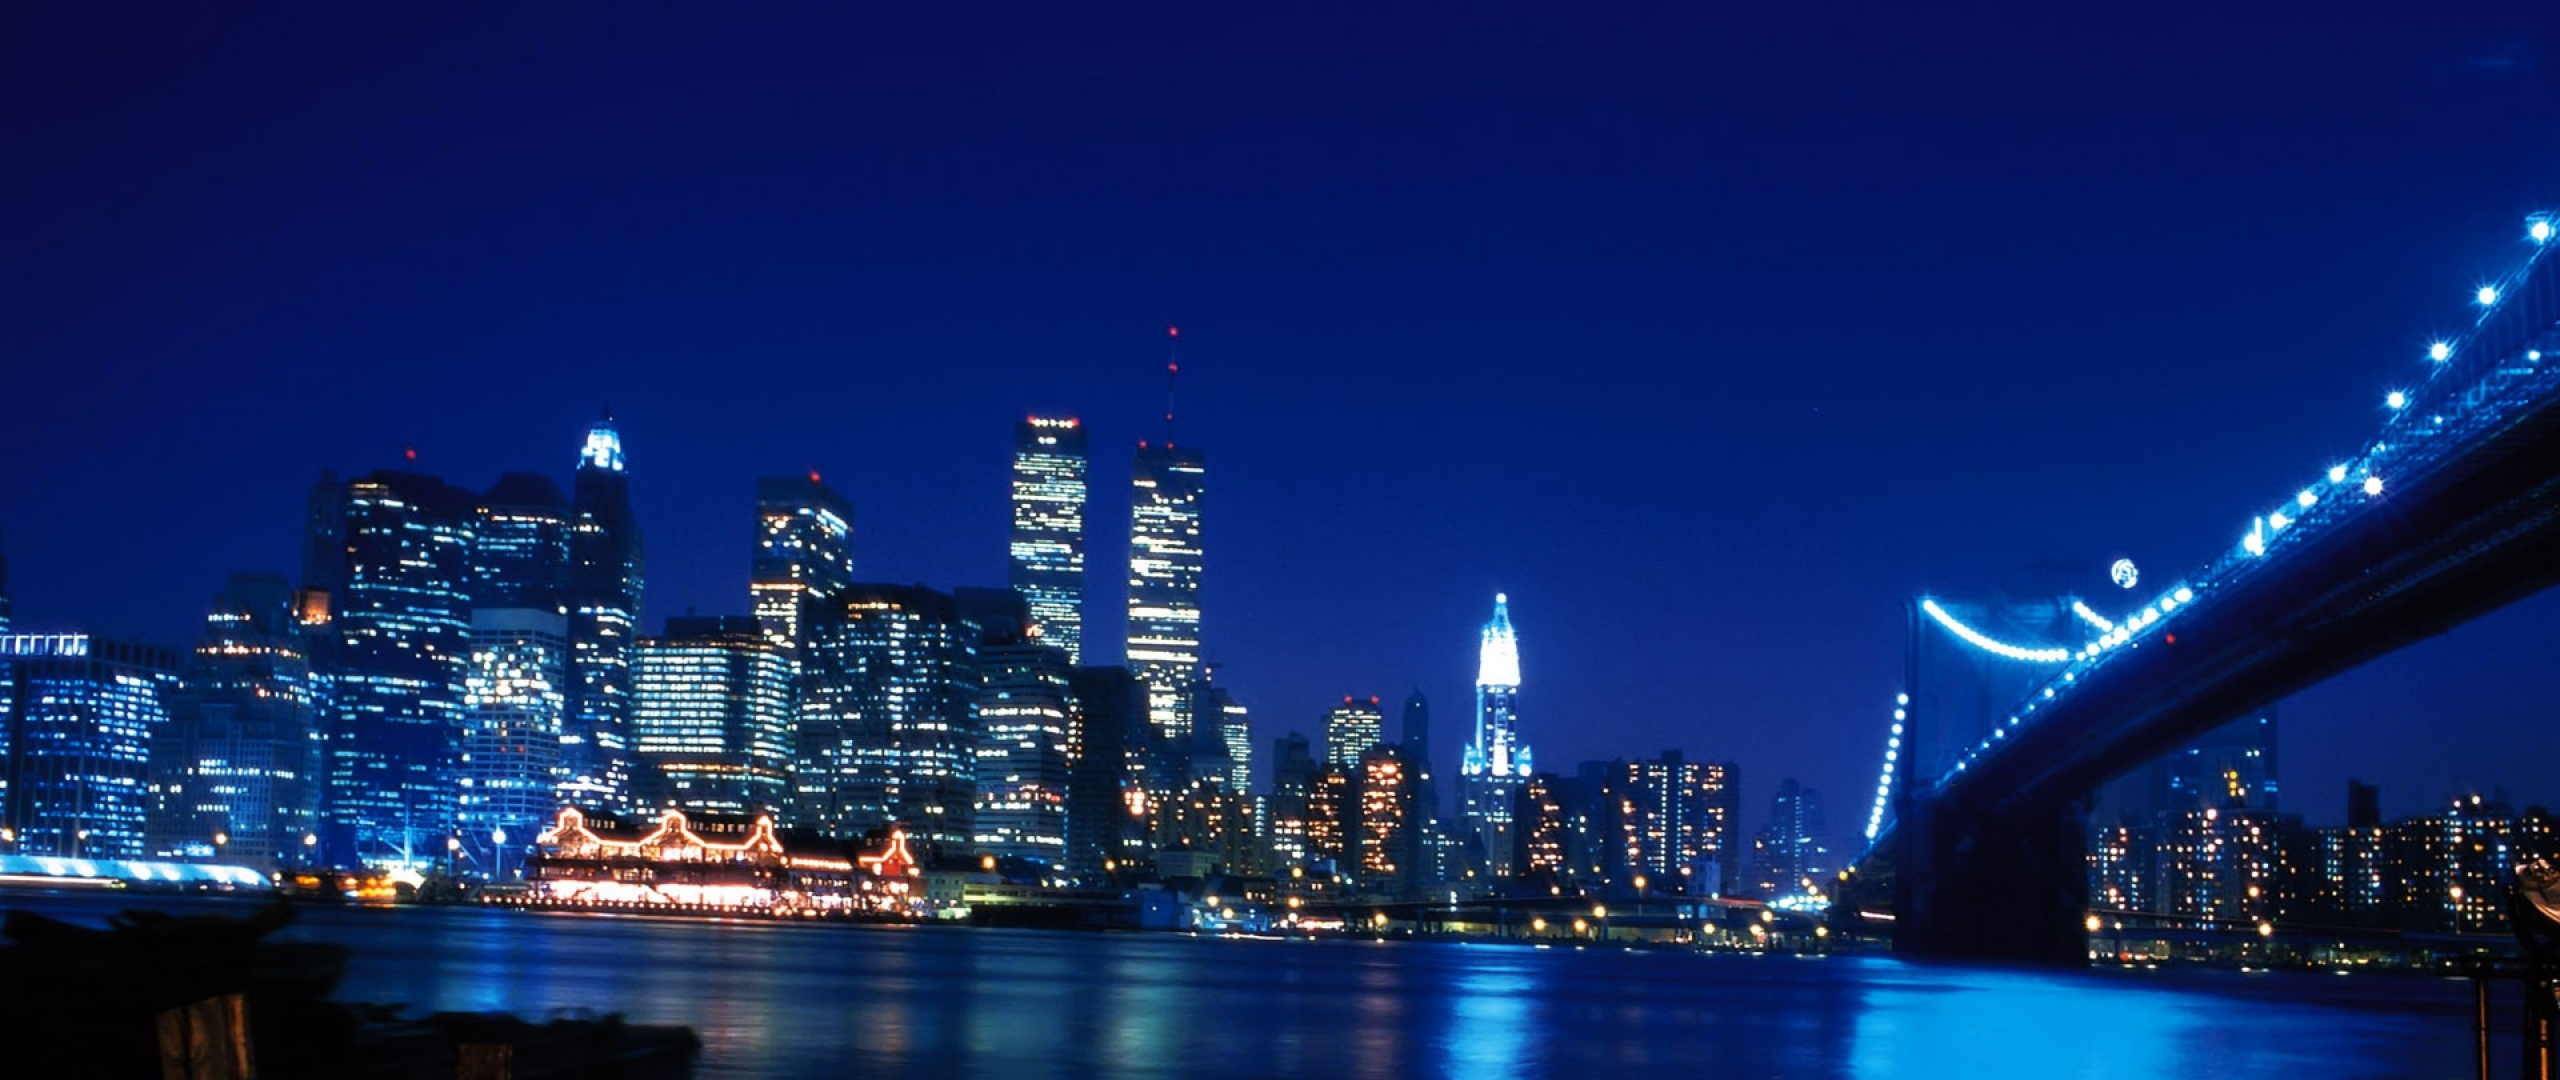 wtc wallpaper twin towers - photo #39